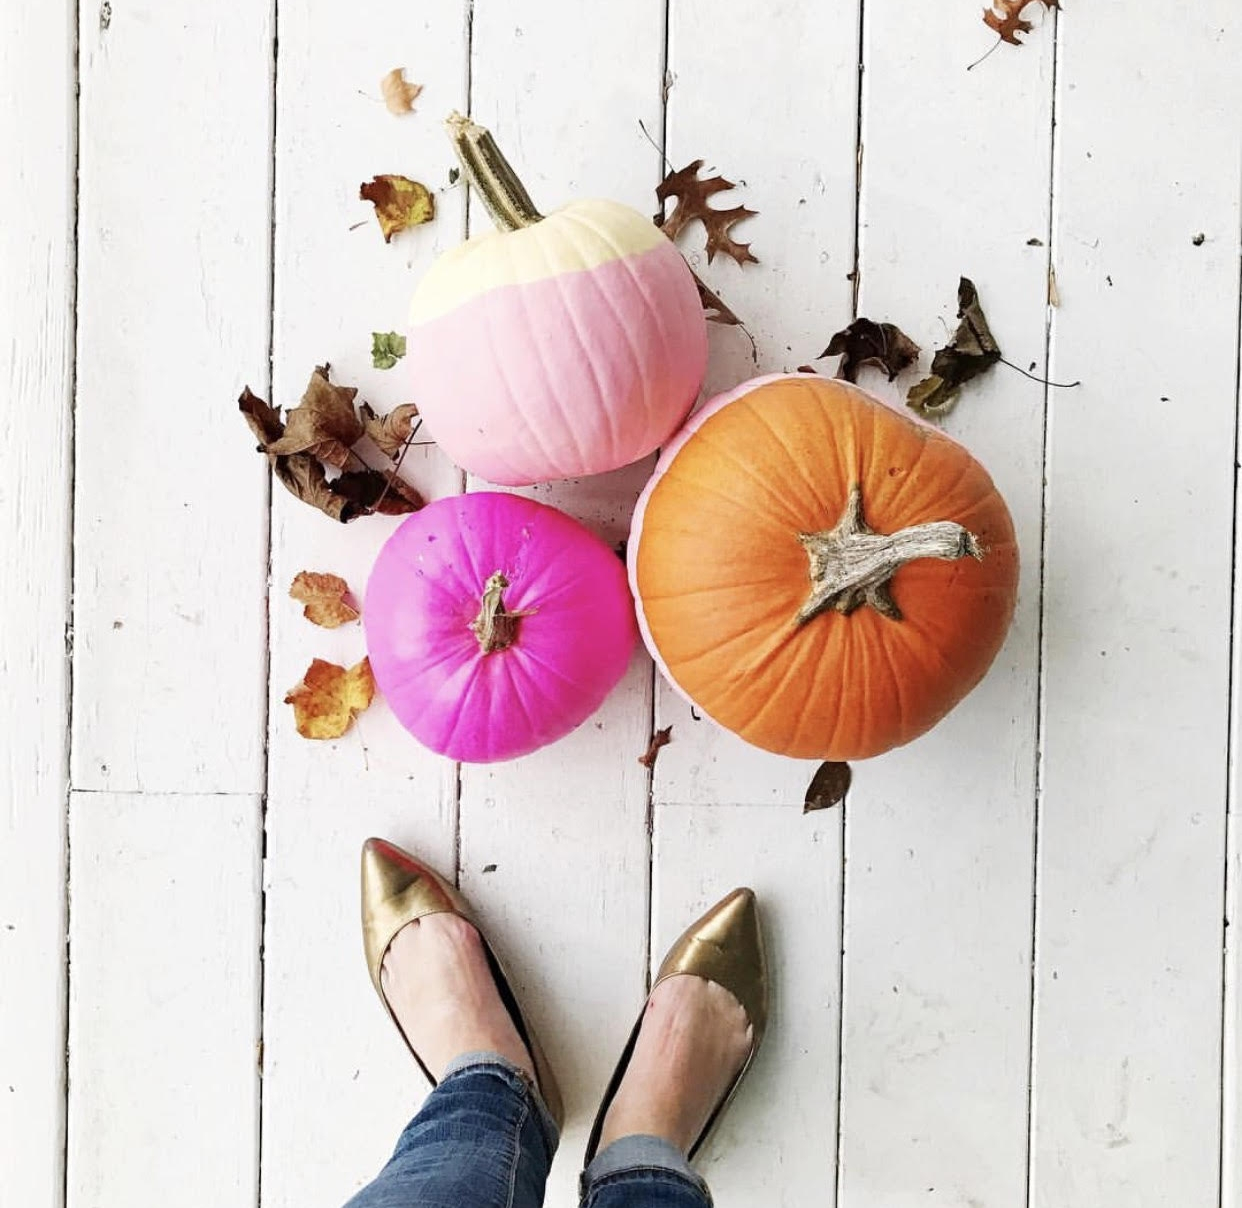 Sweetest pumpkin painting  via Amanda Rydell